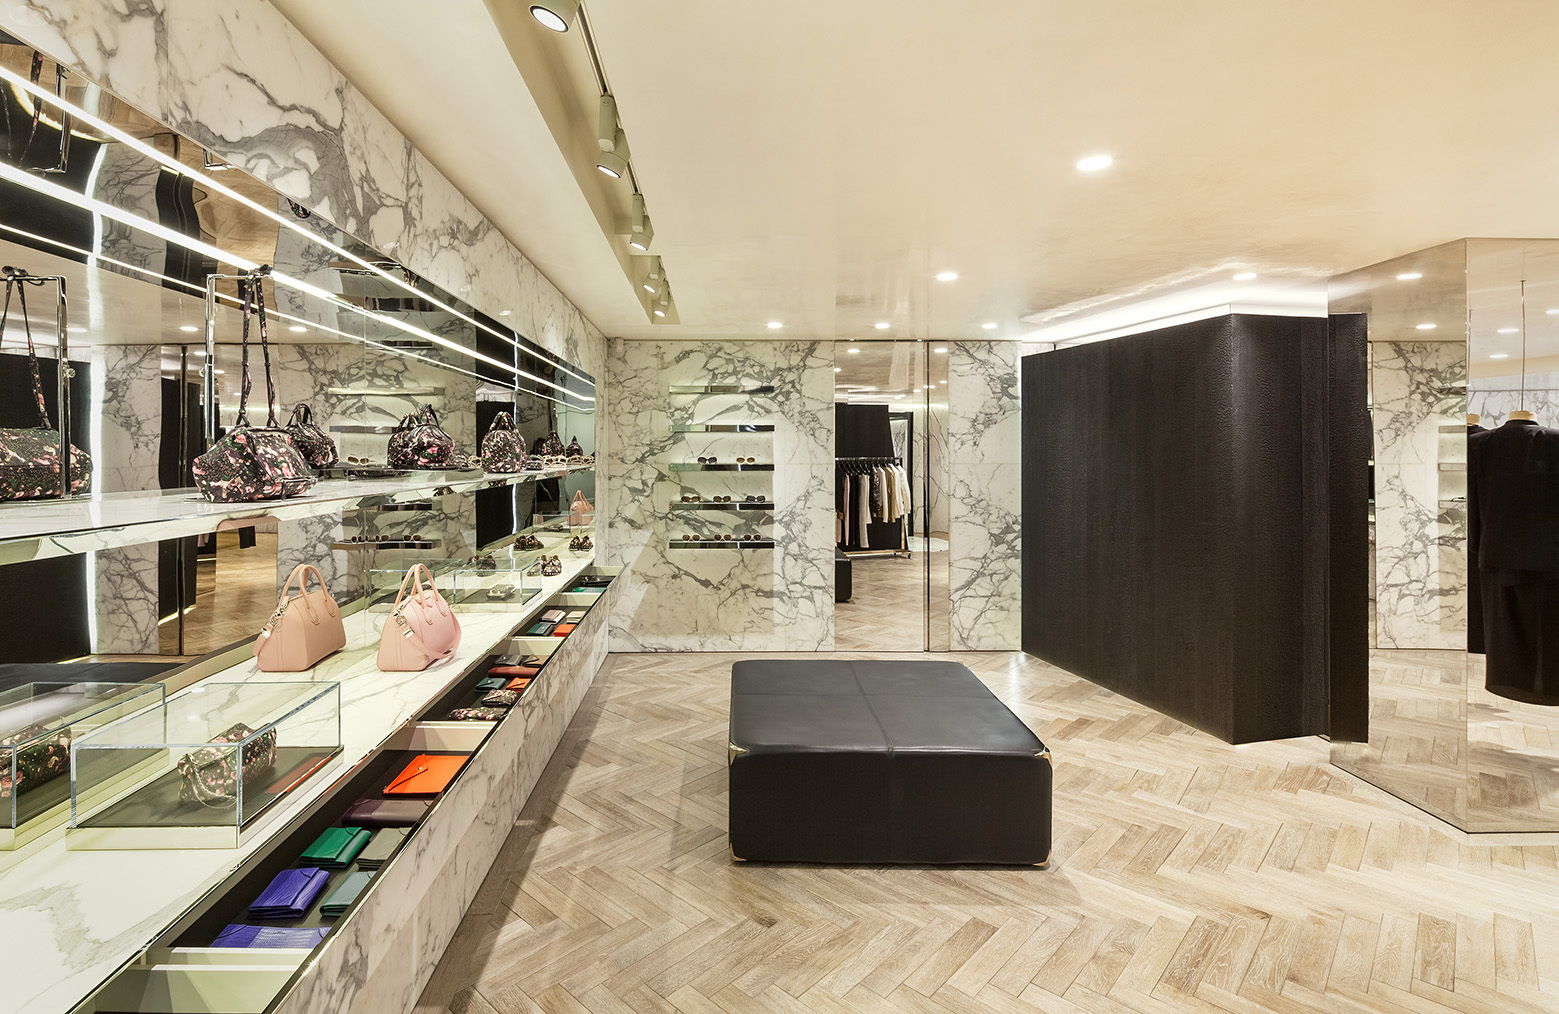 givenchy-flagship-store-in-seoul-piuarch-13